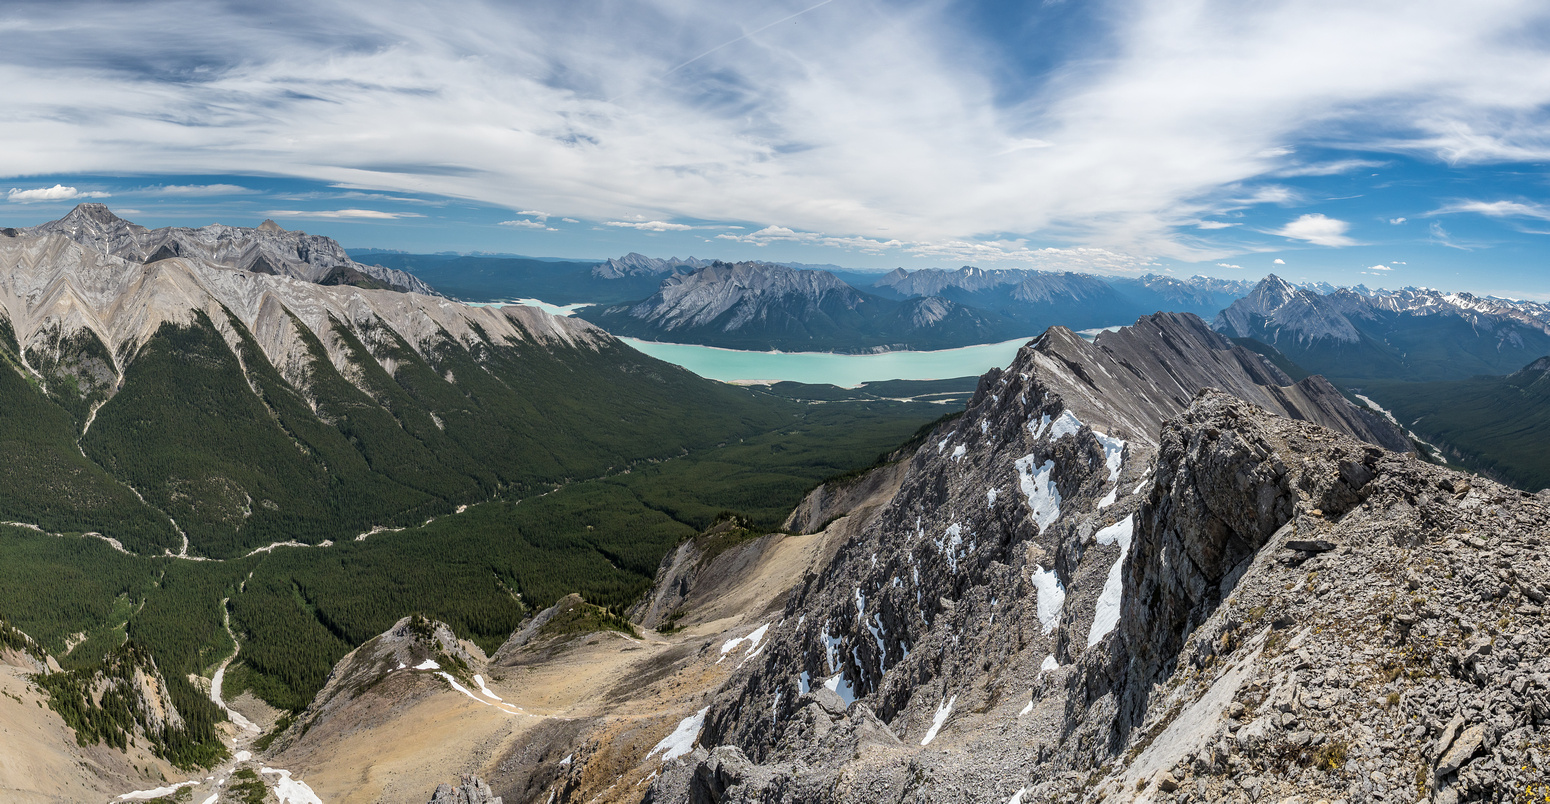 Great views east over Whitegoat Creek towards Vision Quest with Allstones and Abraham at distant left.